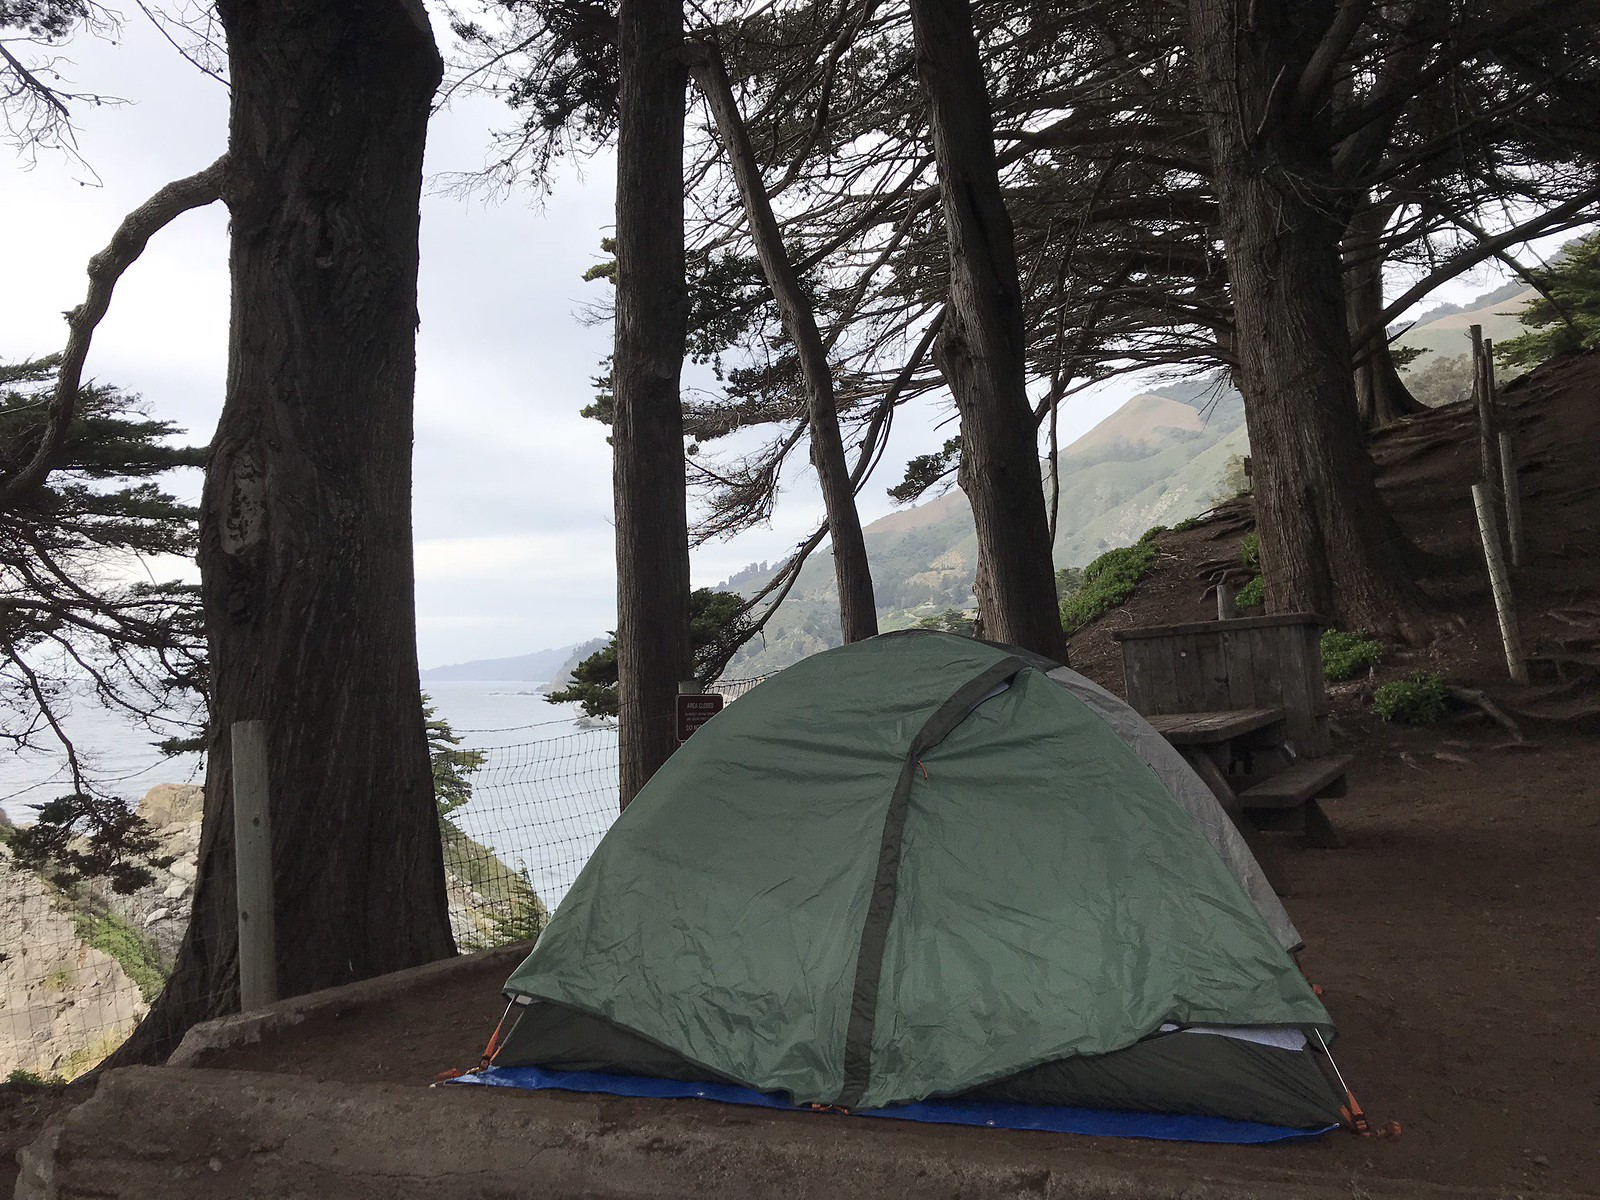 monterey camping | pfeiffer big sur state park and limekiln state park